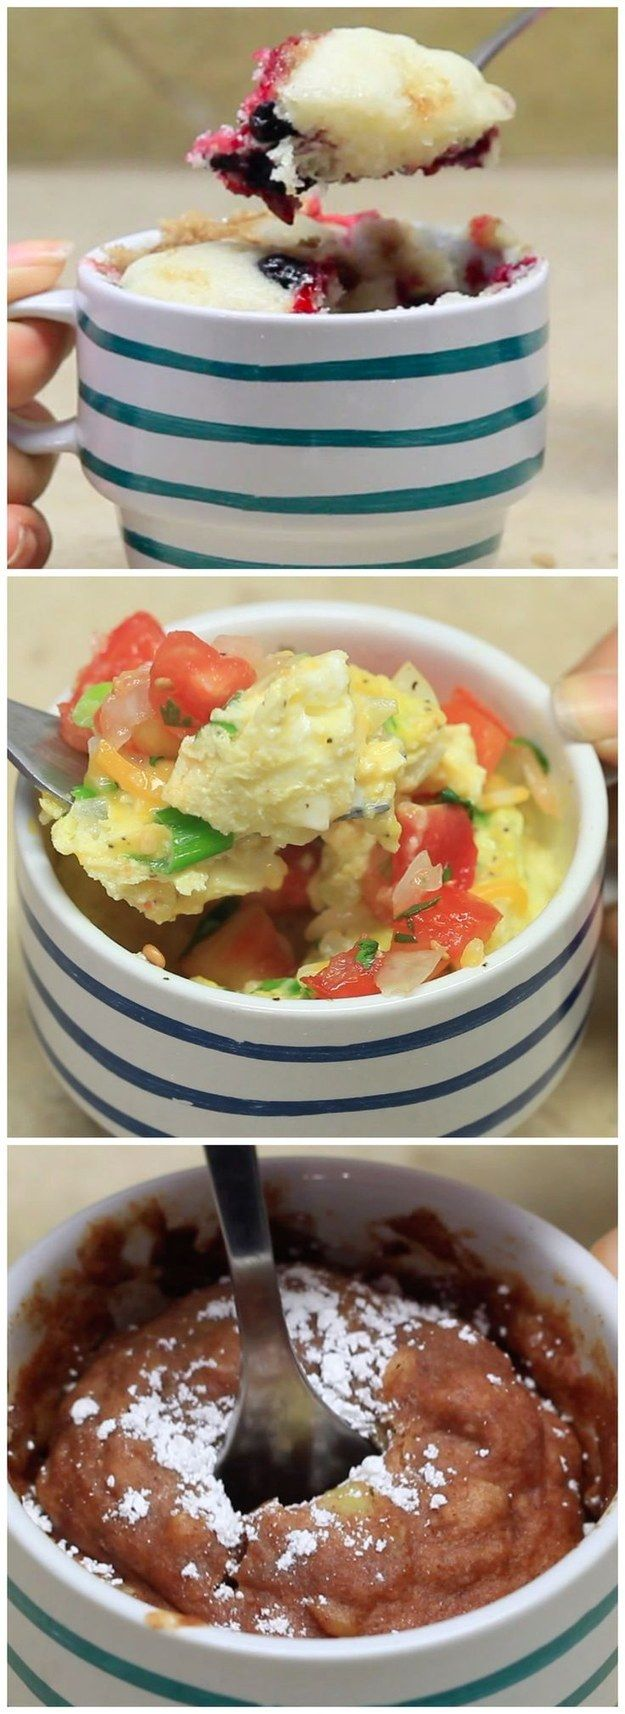 3 Easy Delicious Breakfasts You Can Make In A Mug